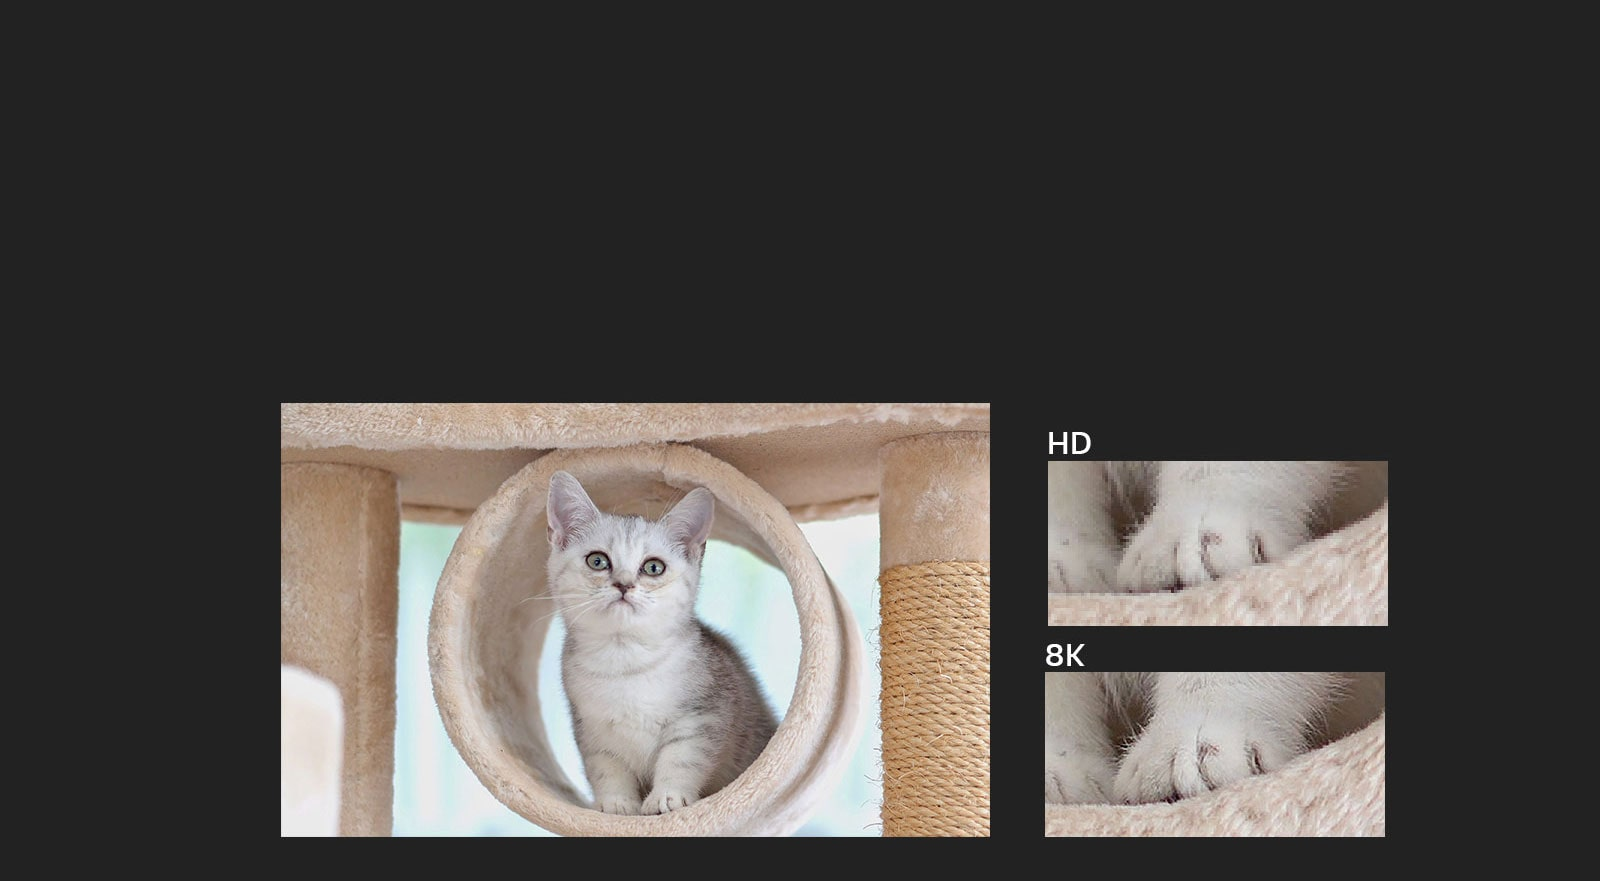 Image of cat with HD and 8K zoom